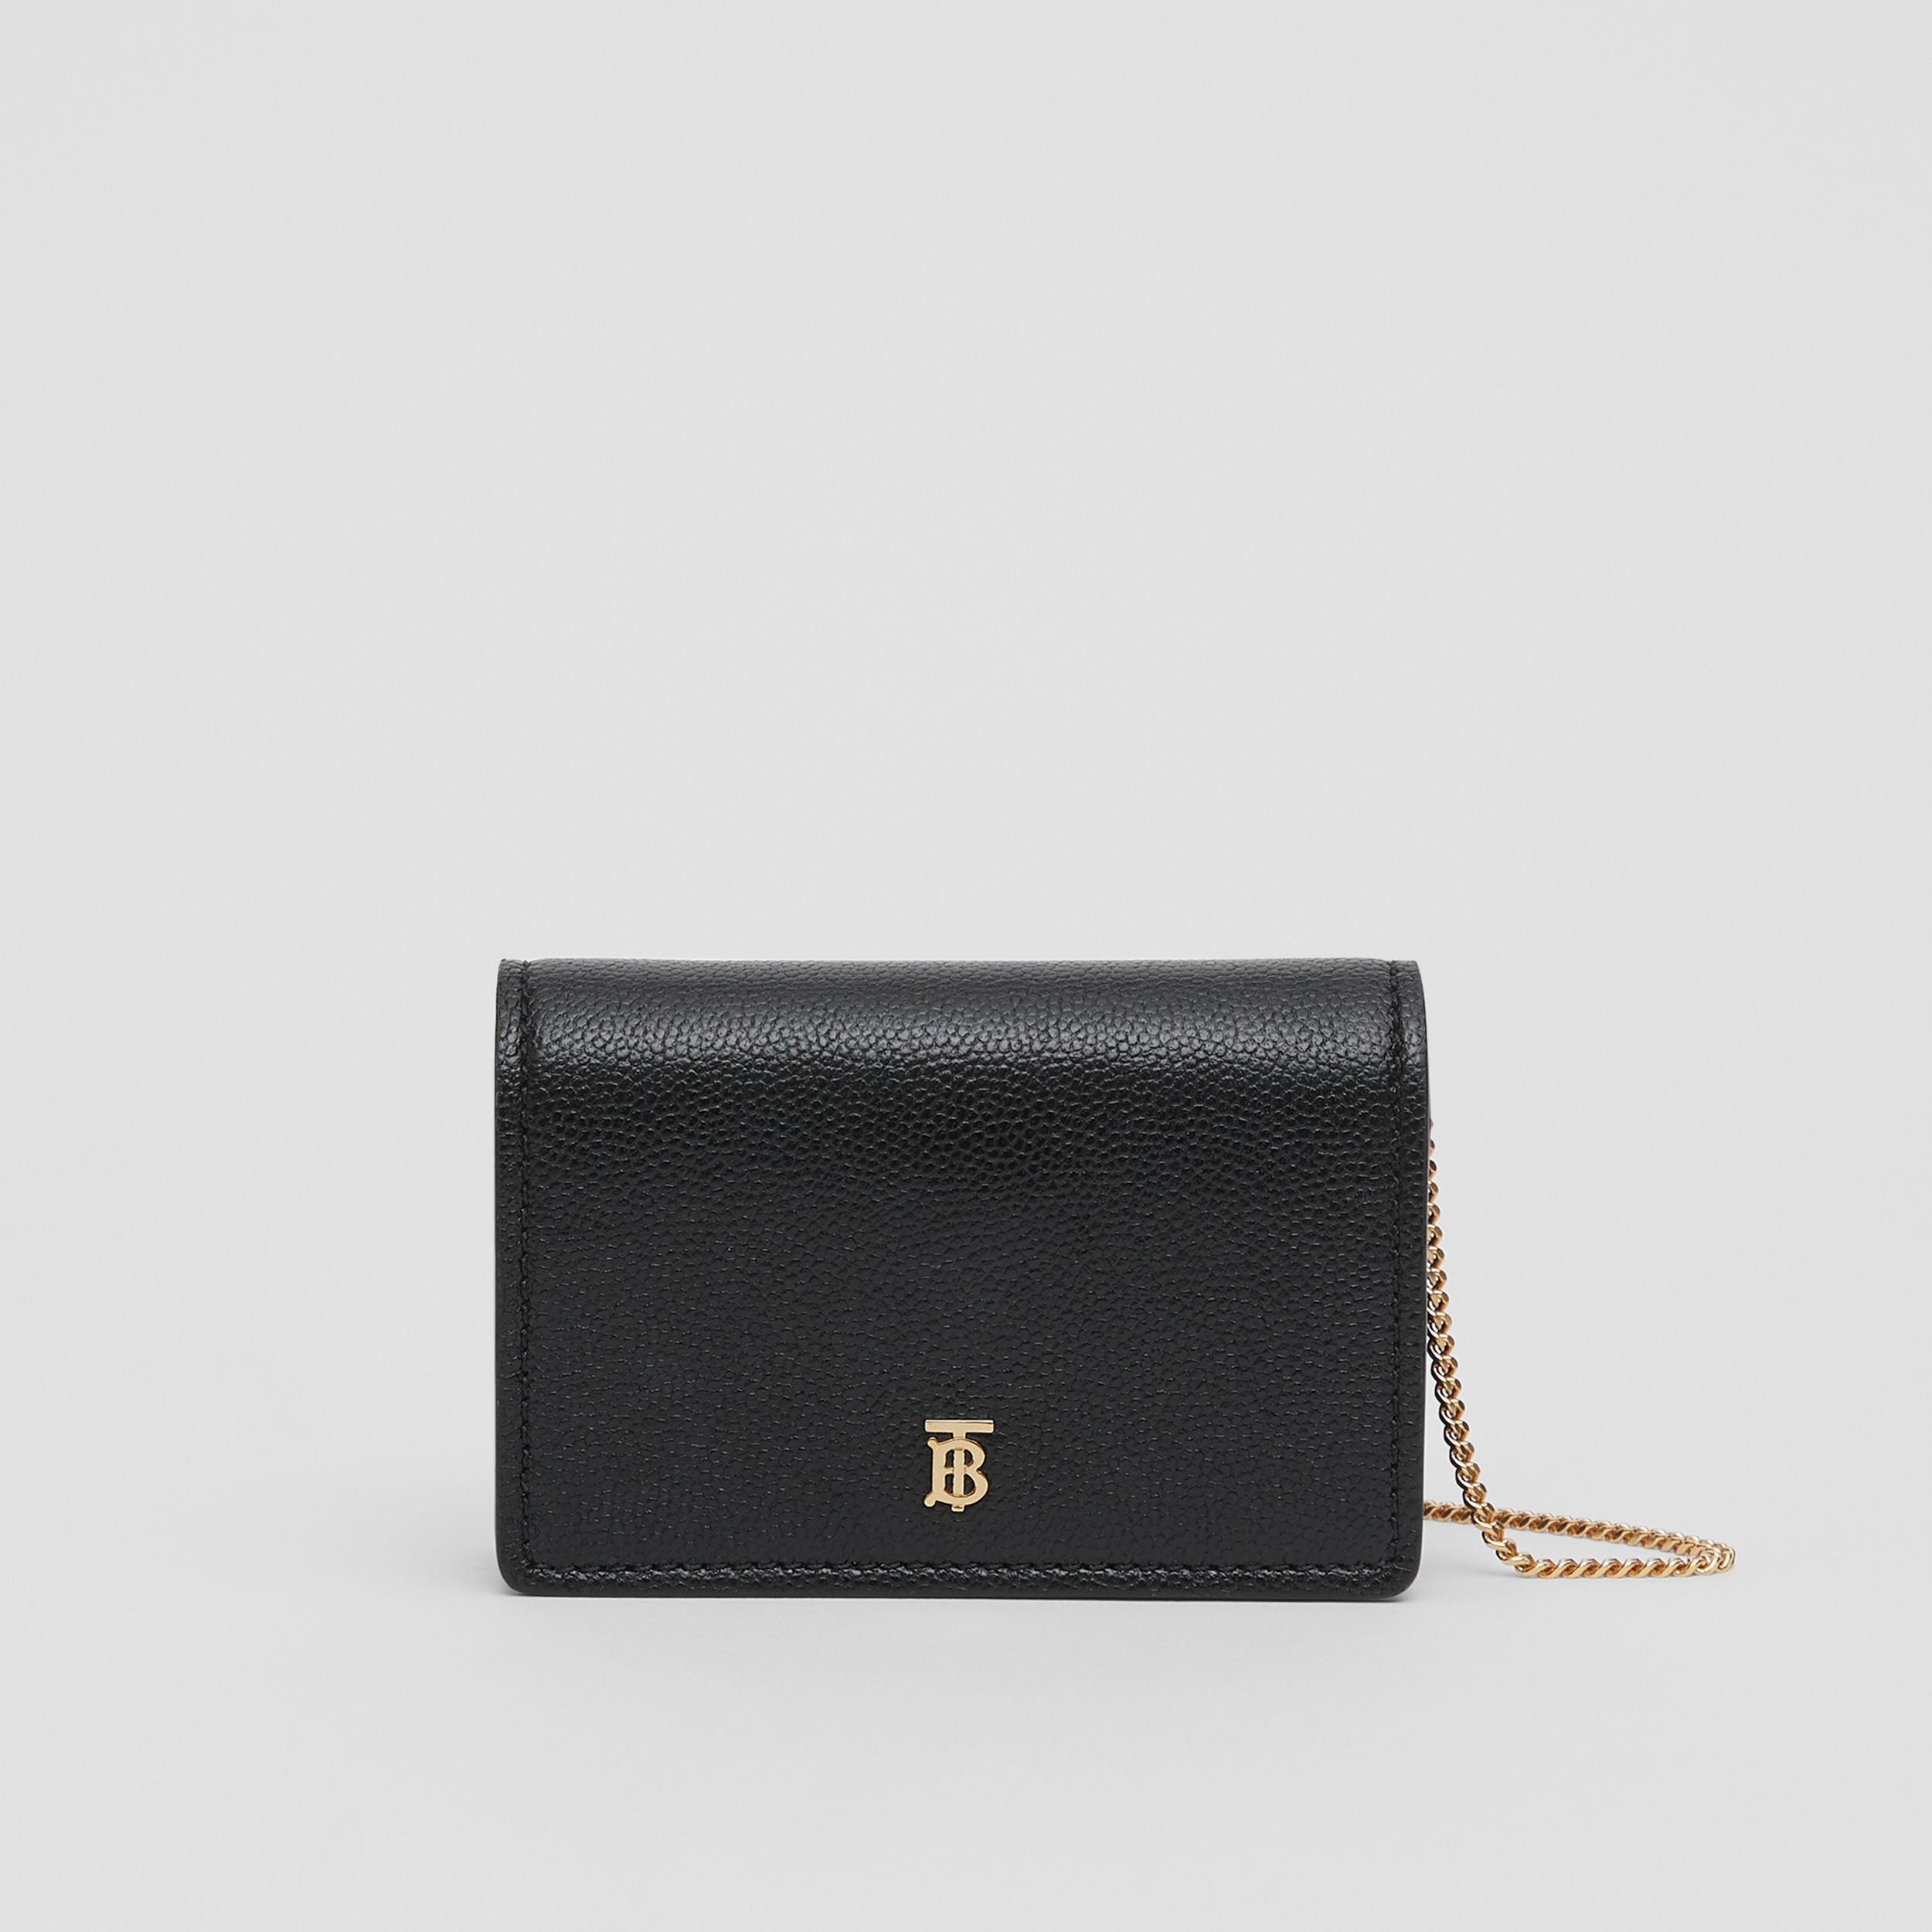 Grainy Leather Card Case with Detachable Strap in Black - Women | Burberry - 1